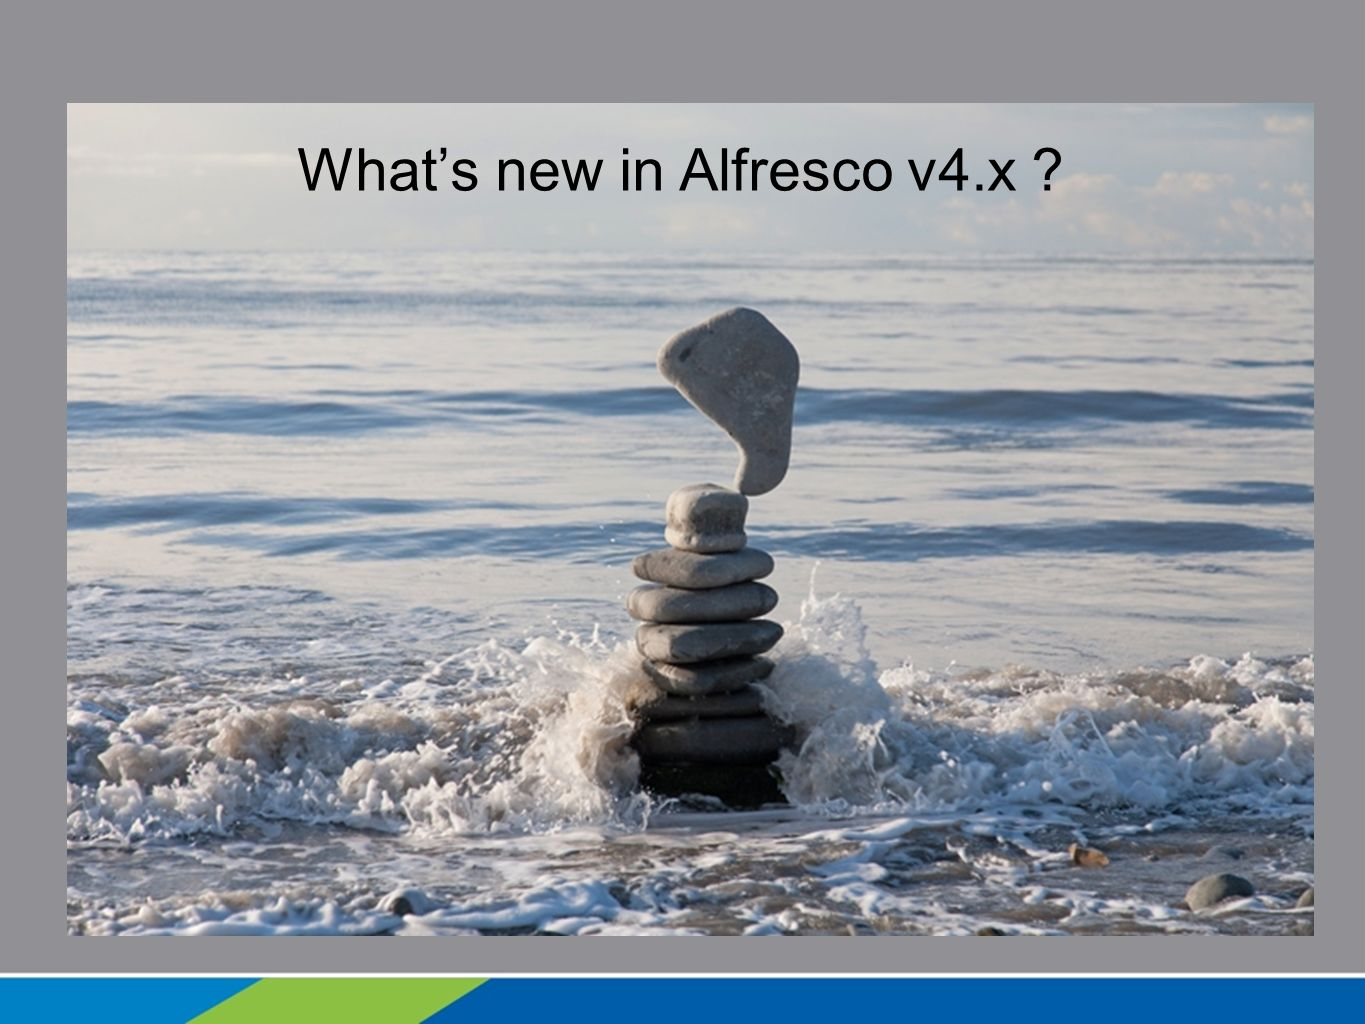 What's new in Alfresco v4.x